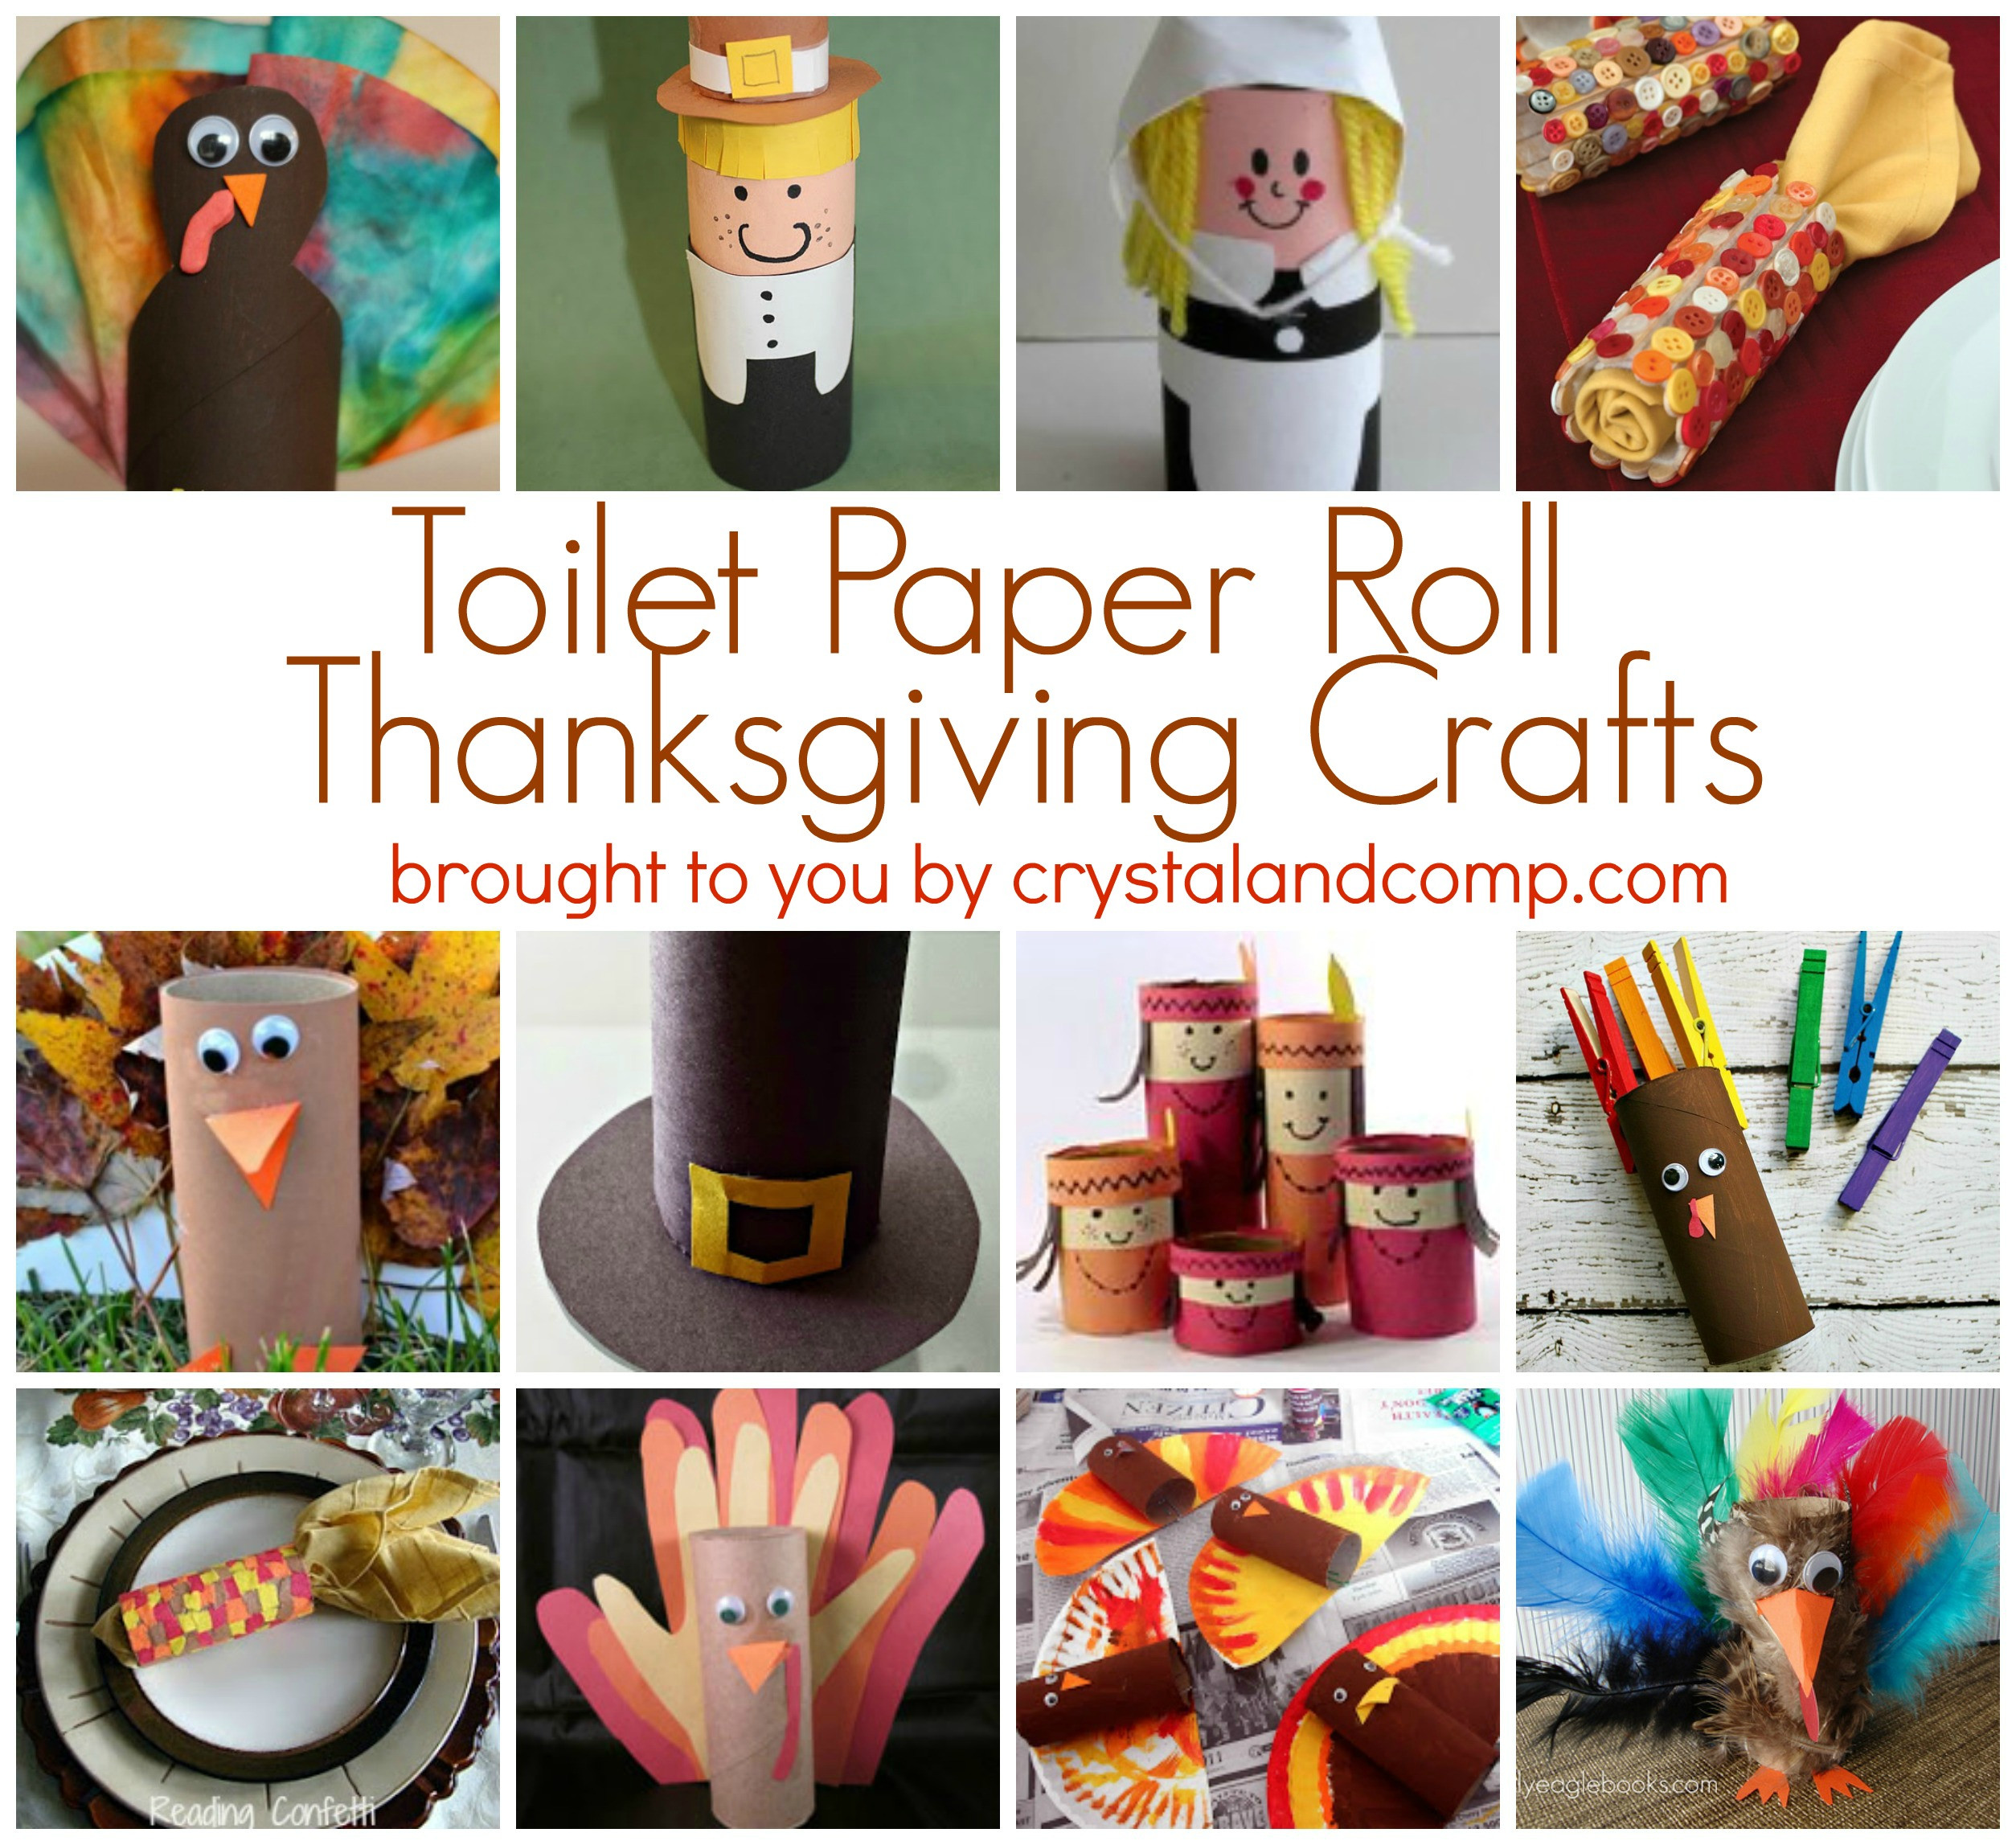 Toilet Paper Roll Thanksgiving Crafts  Toilet Paper Roll Thanksgiving Crafts